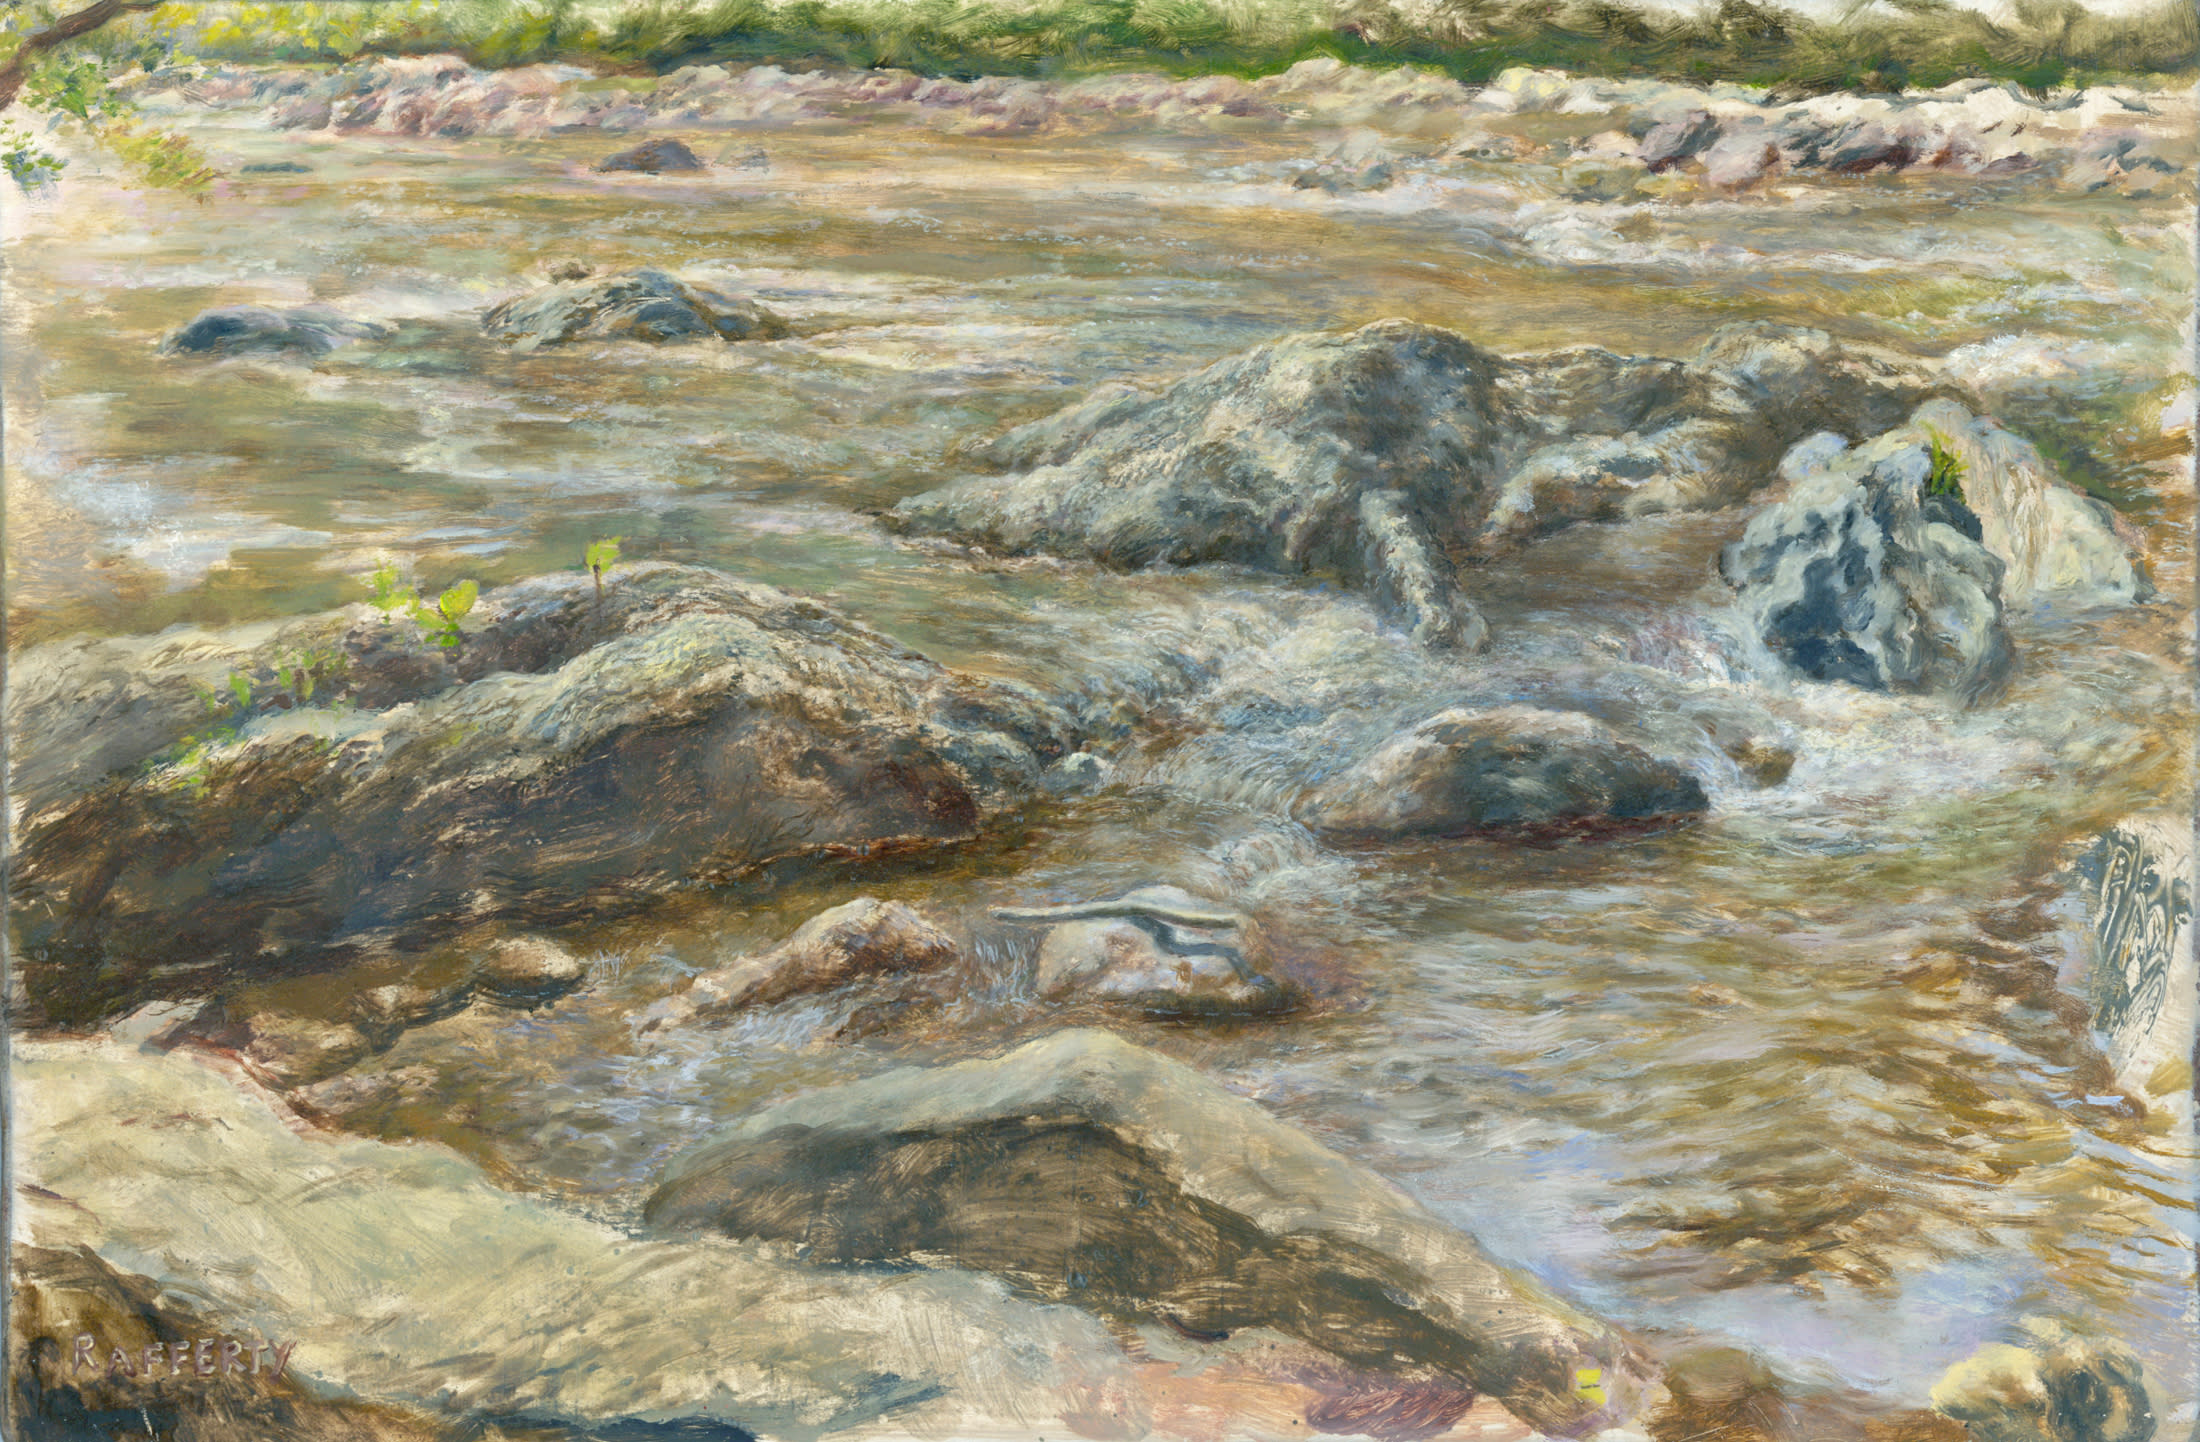 <div class='title'>           (submit)Scene from the Ledges(m)   Painting   Rafferty   1 (1)         </div>